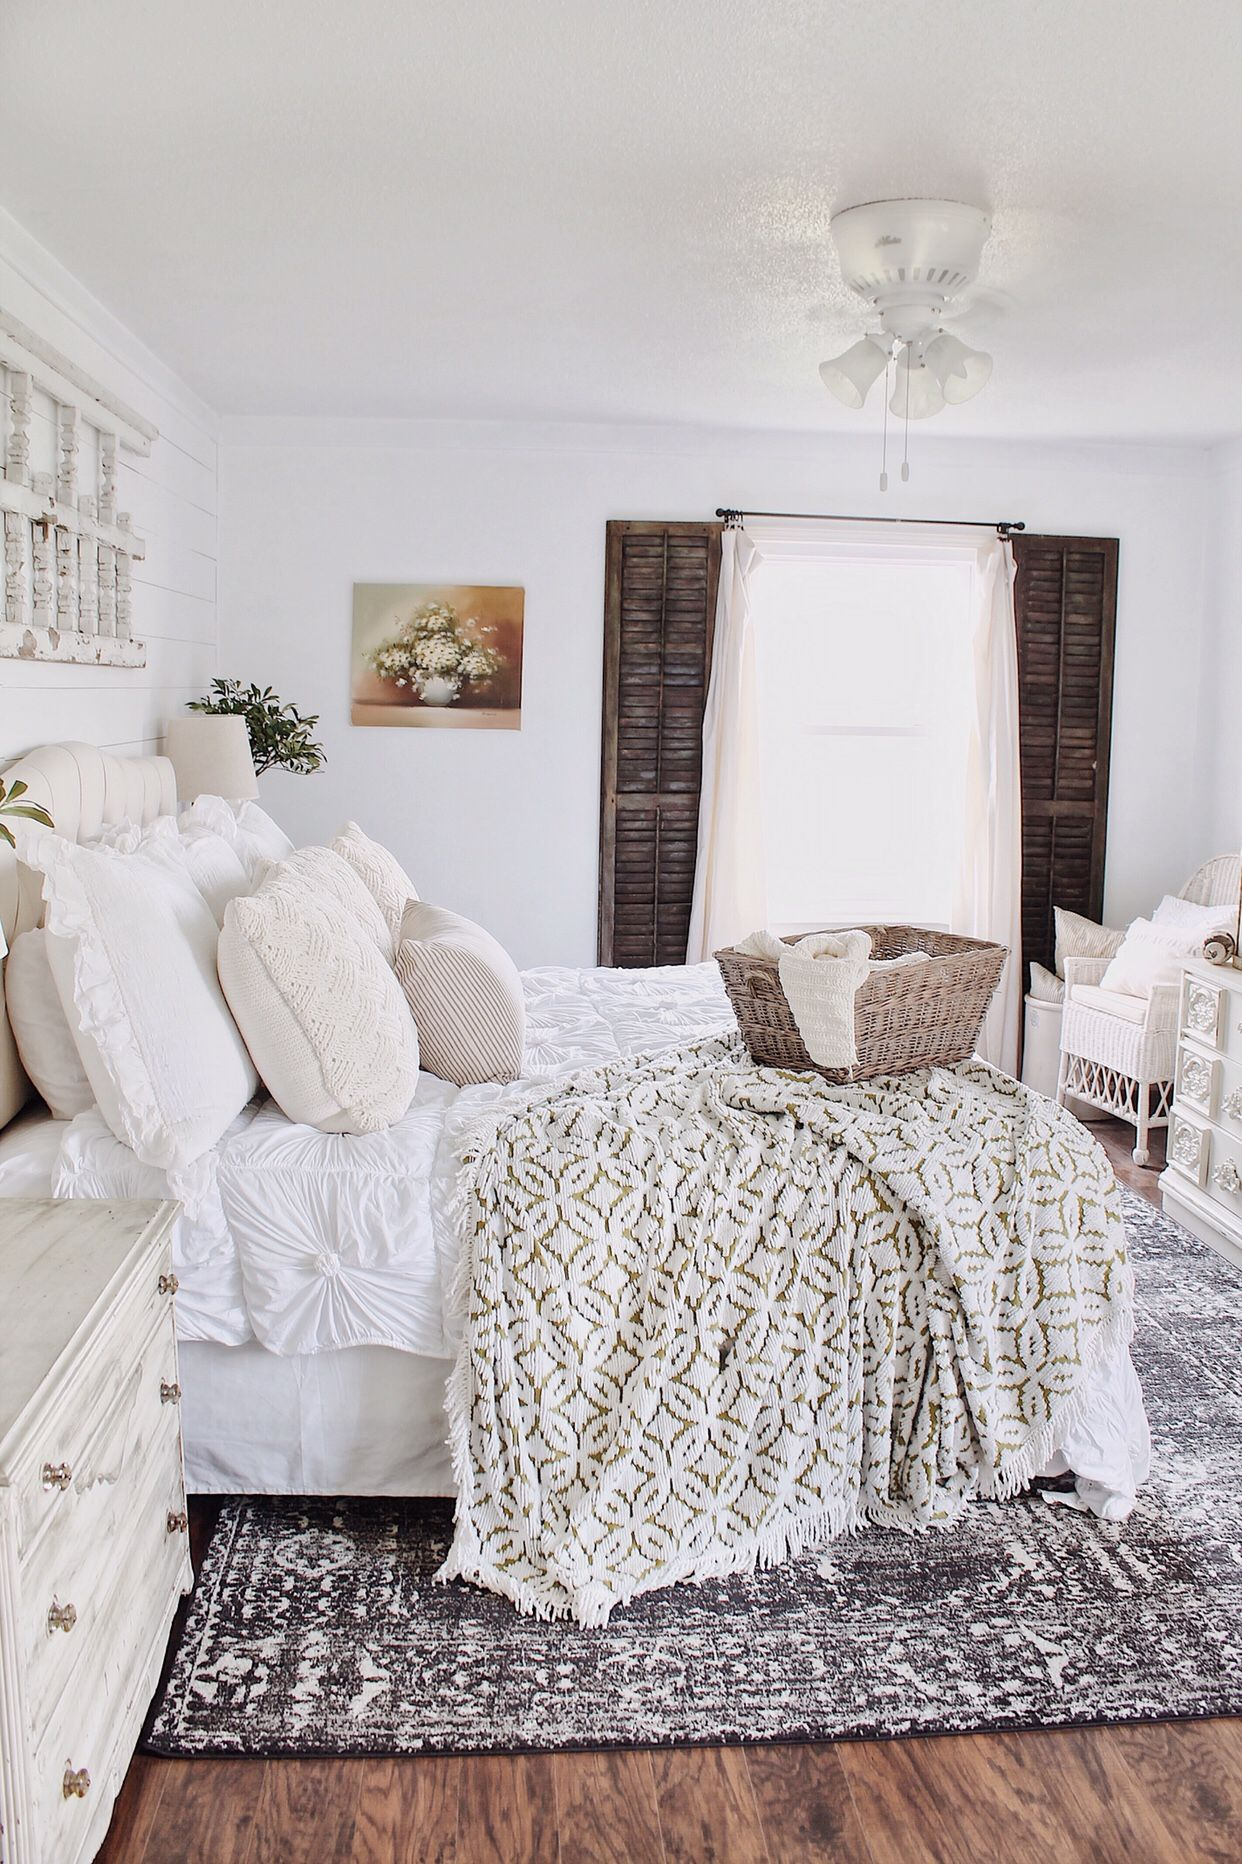 Master bedroom images  A Flower Painting In The Master Bedroom  Home Inspiration